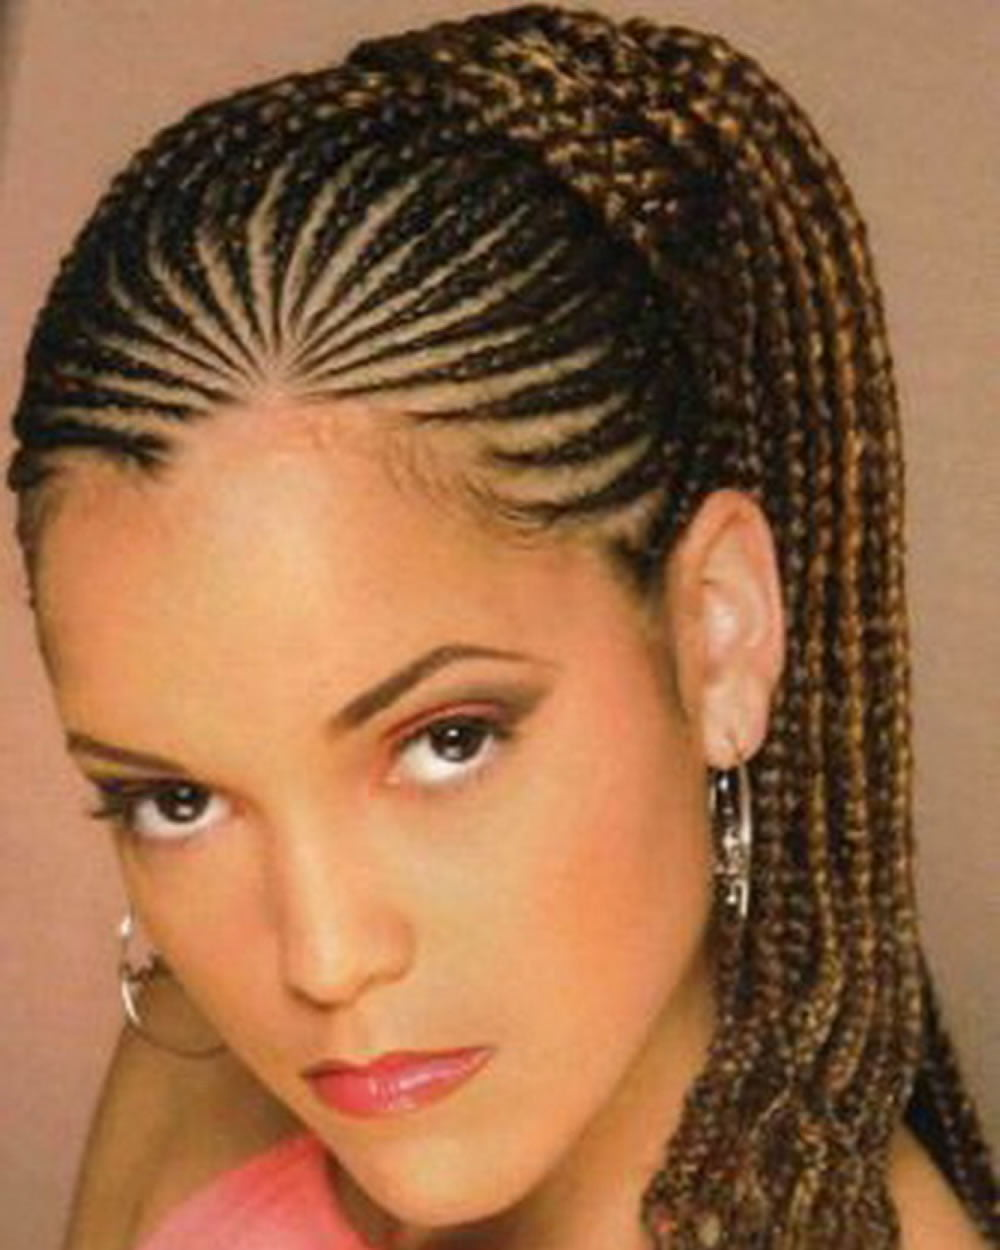 Cornrow Hairstyles for Black Women 20182019  Page 2